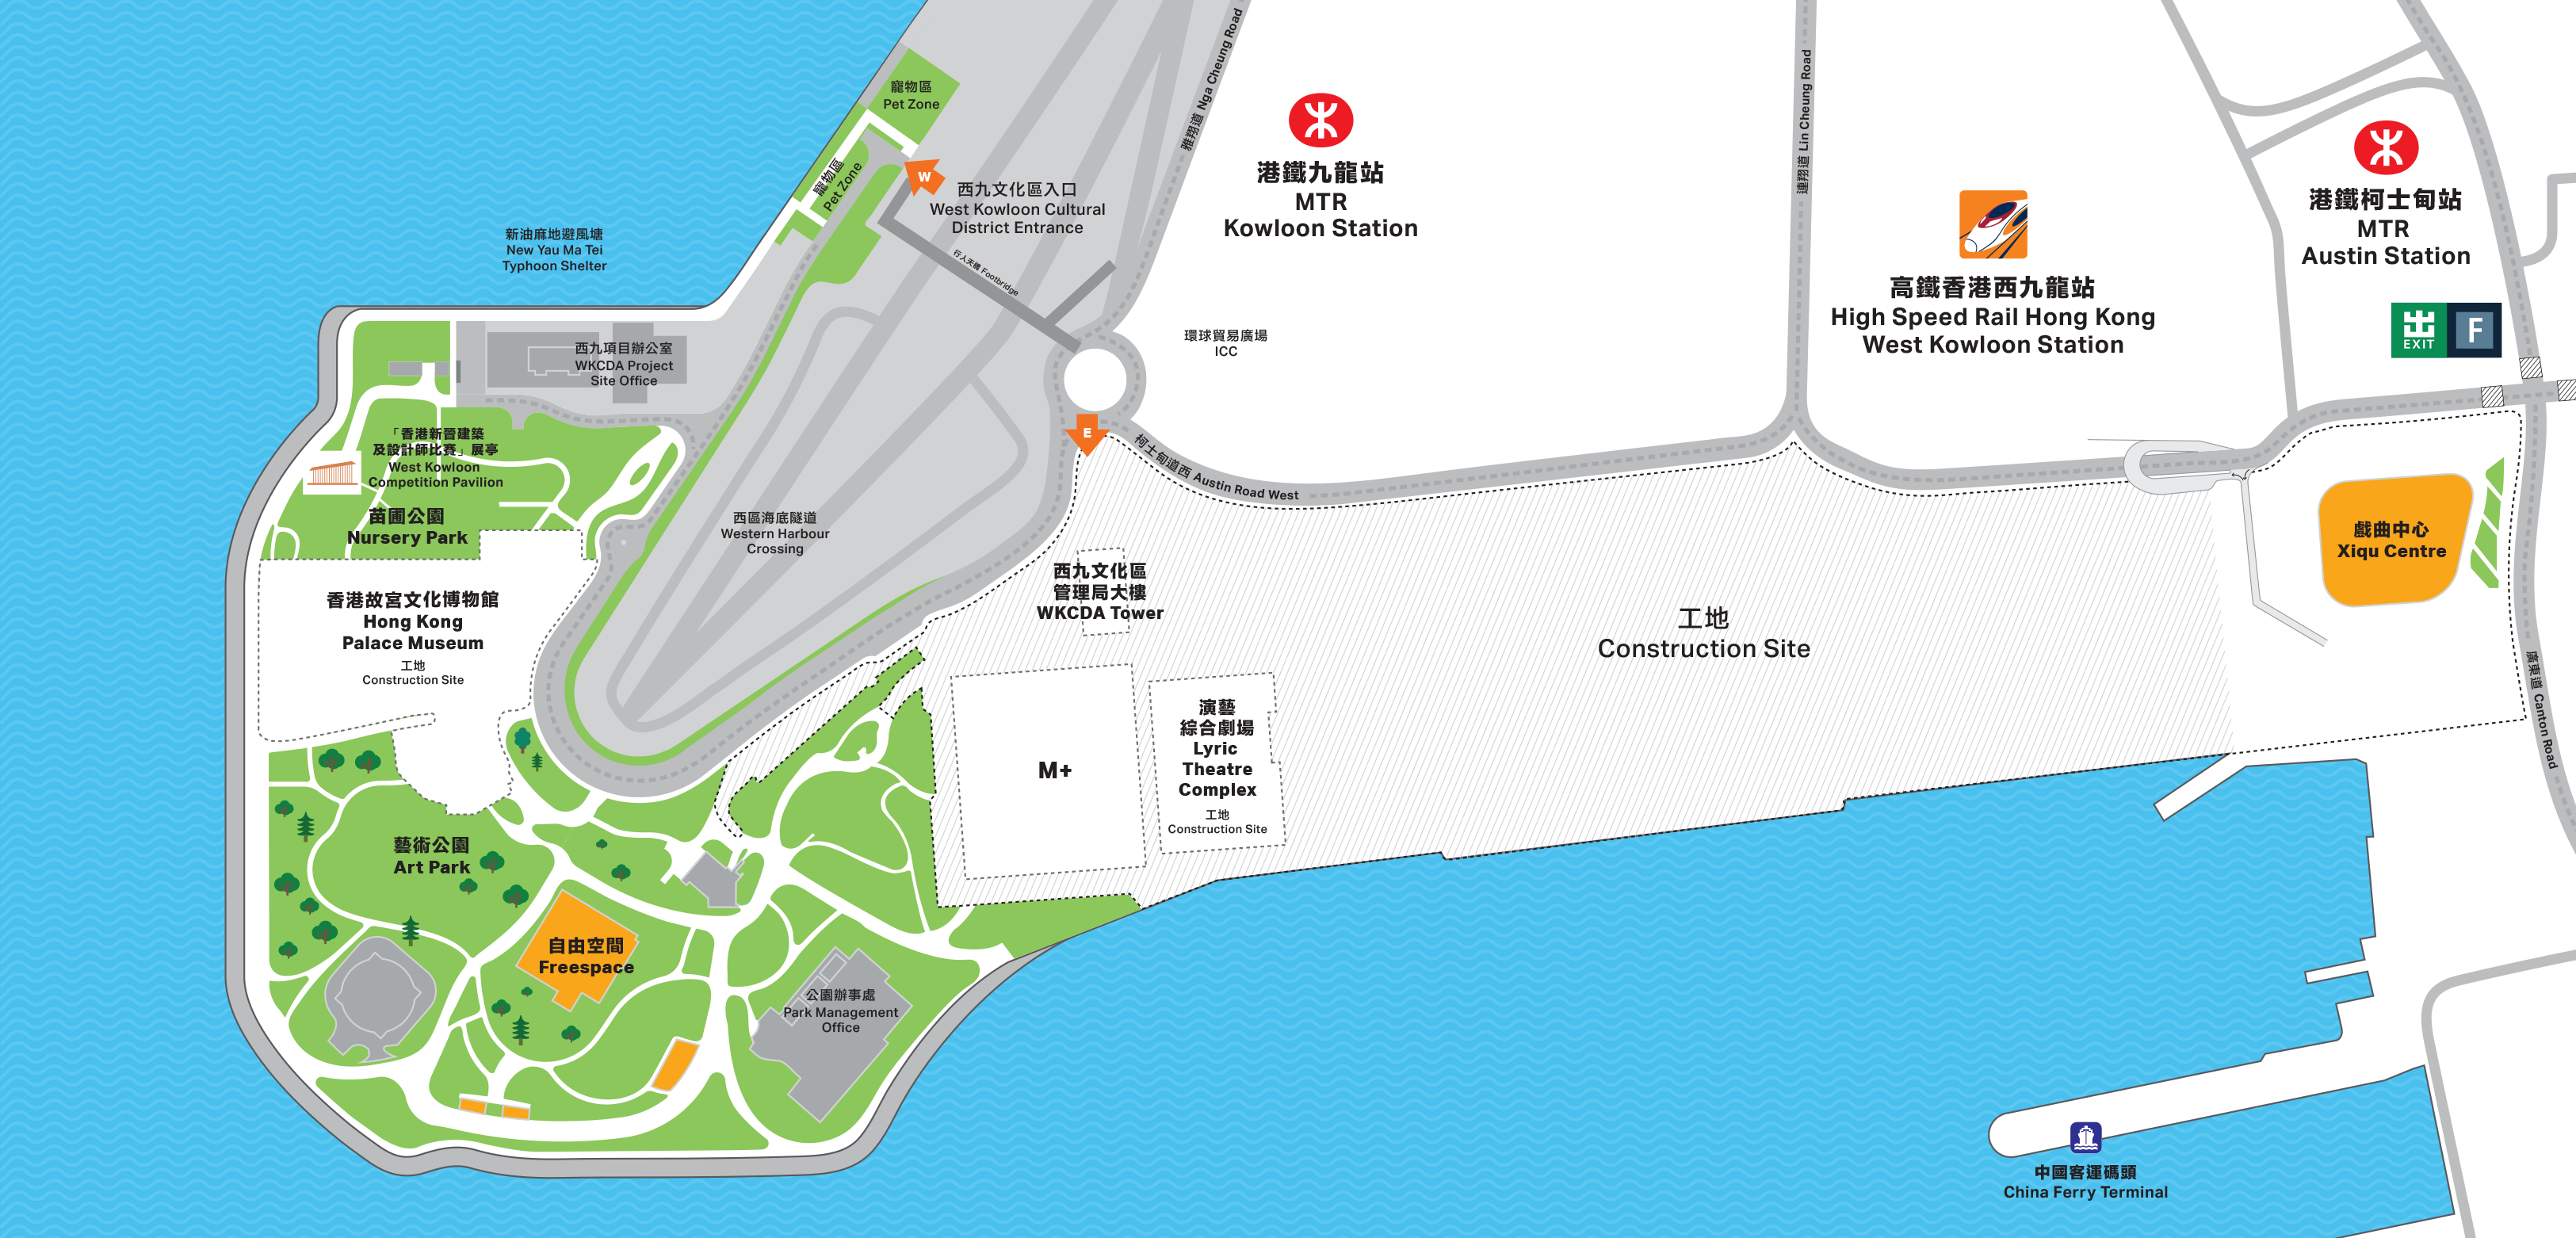 West Kowloon District Map